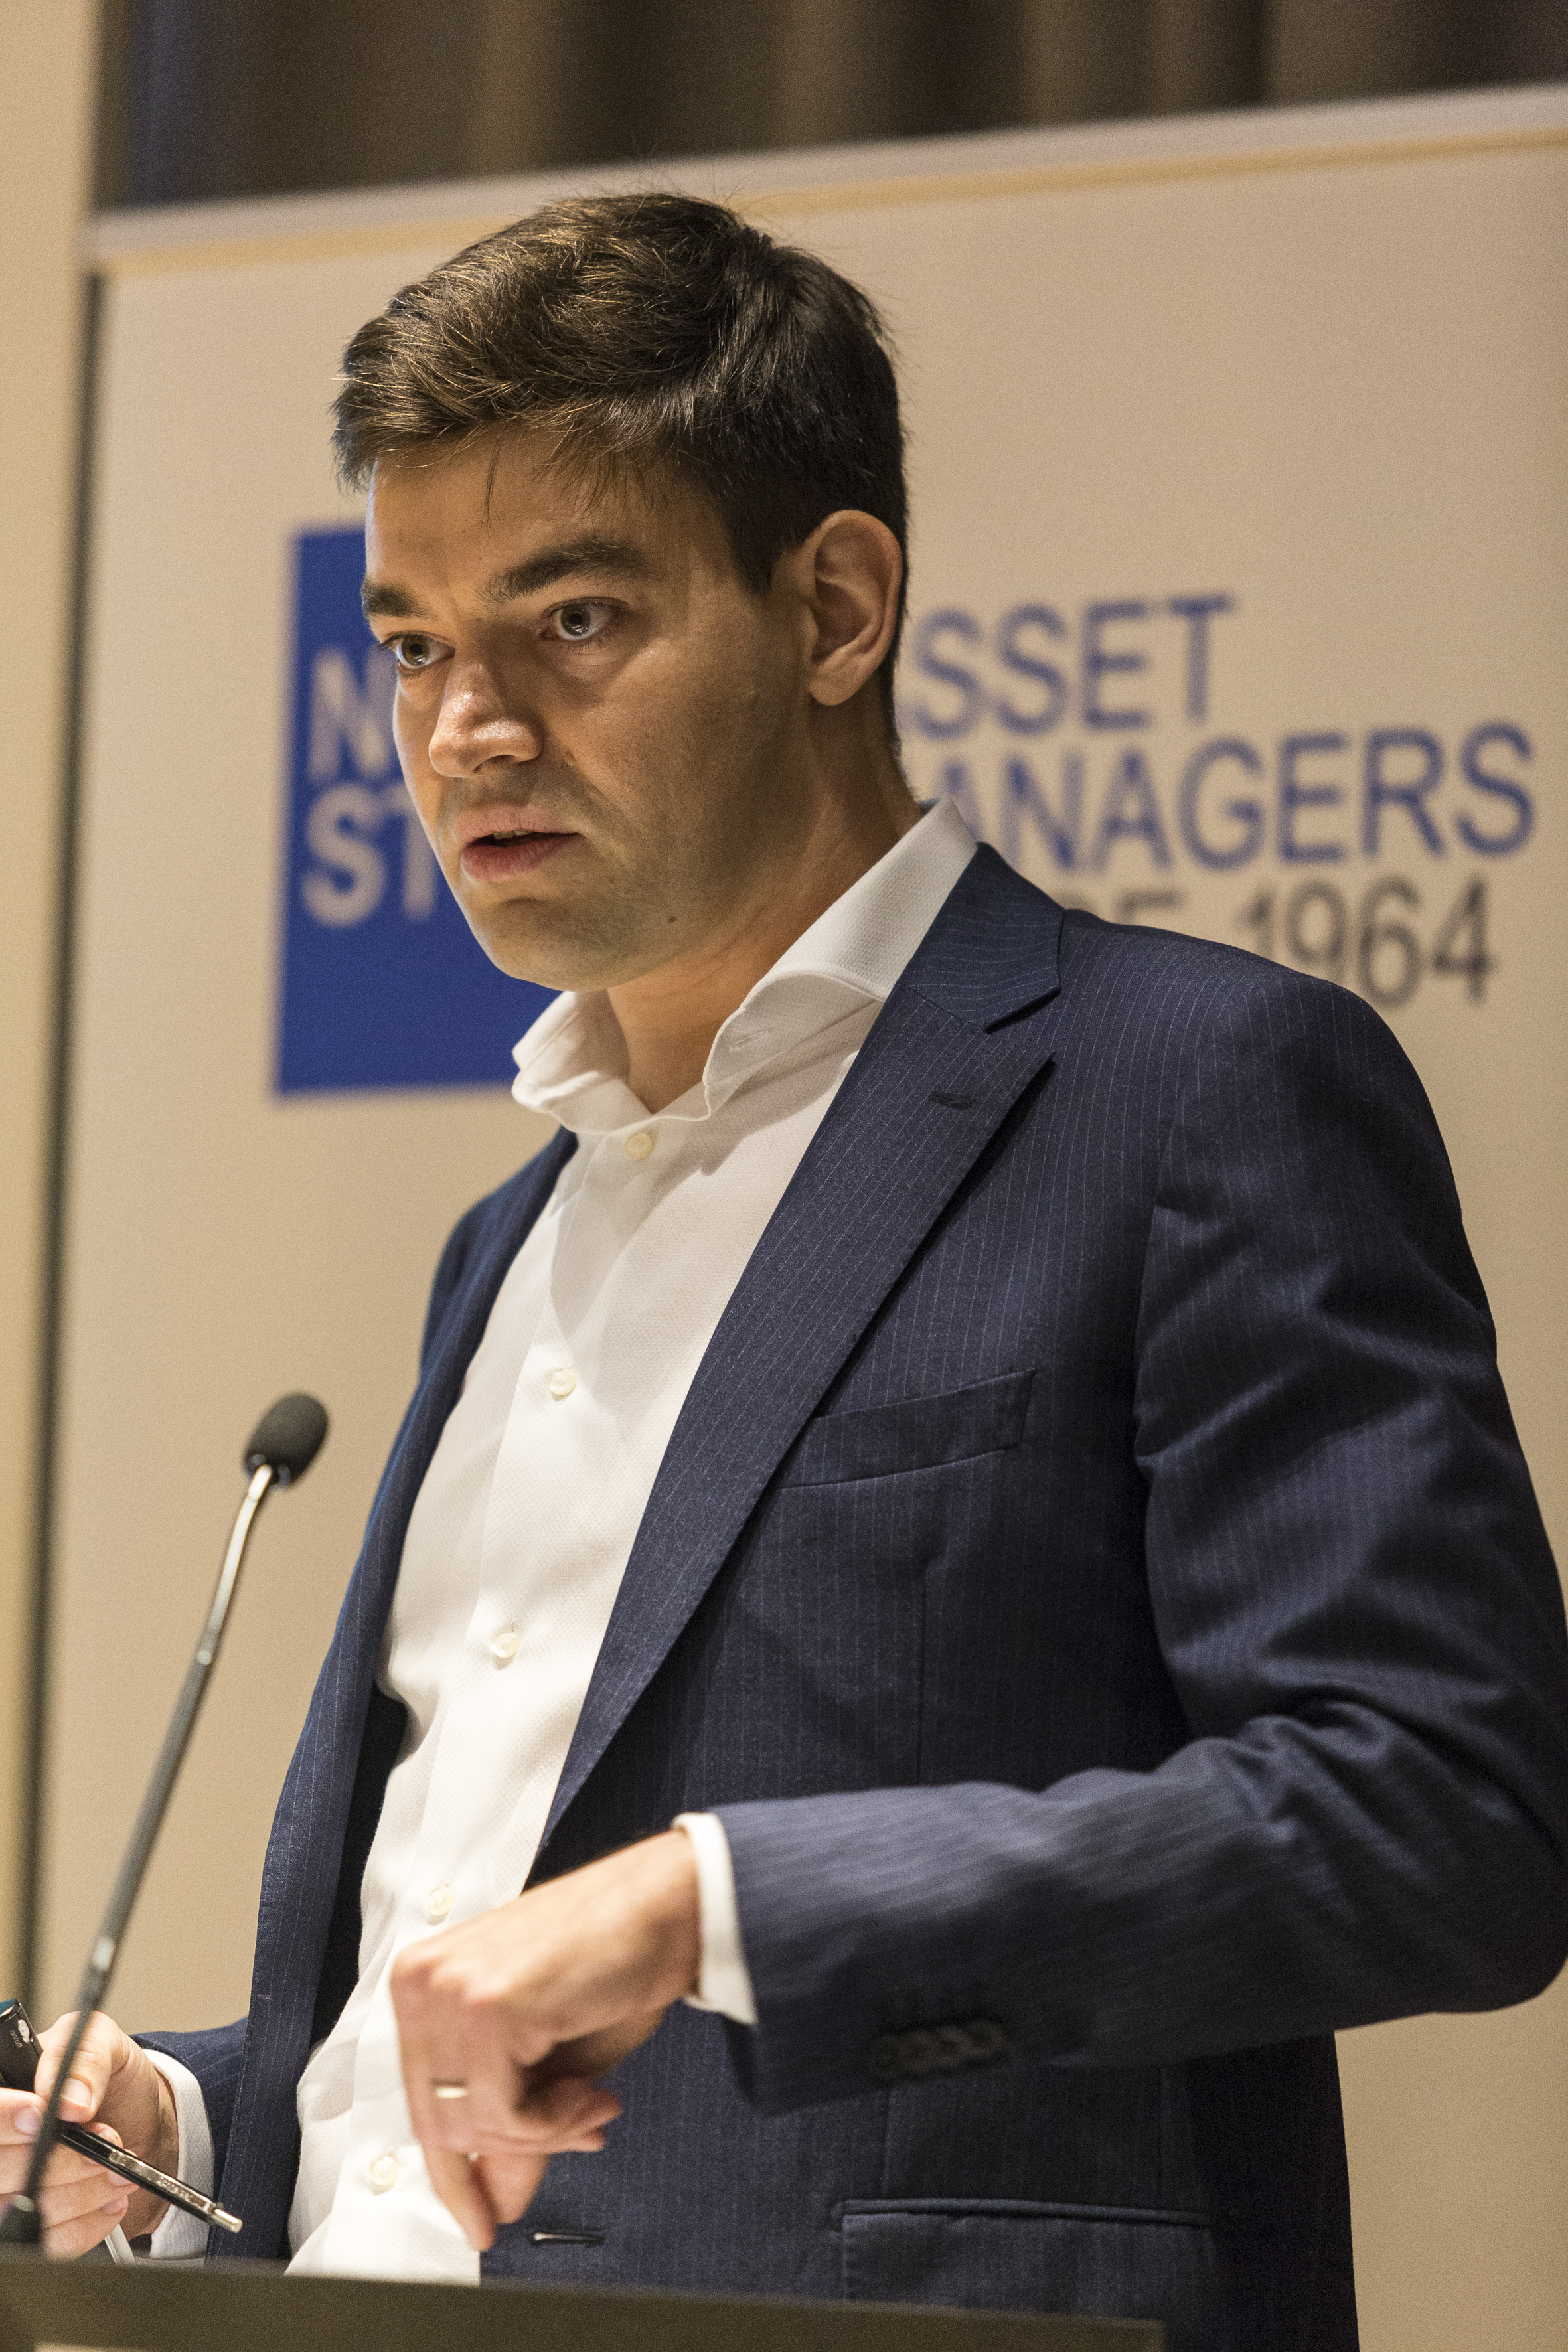 Grégoire Dooms from Systematica Investments